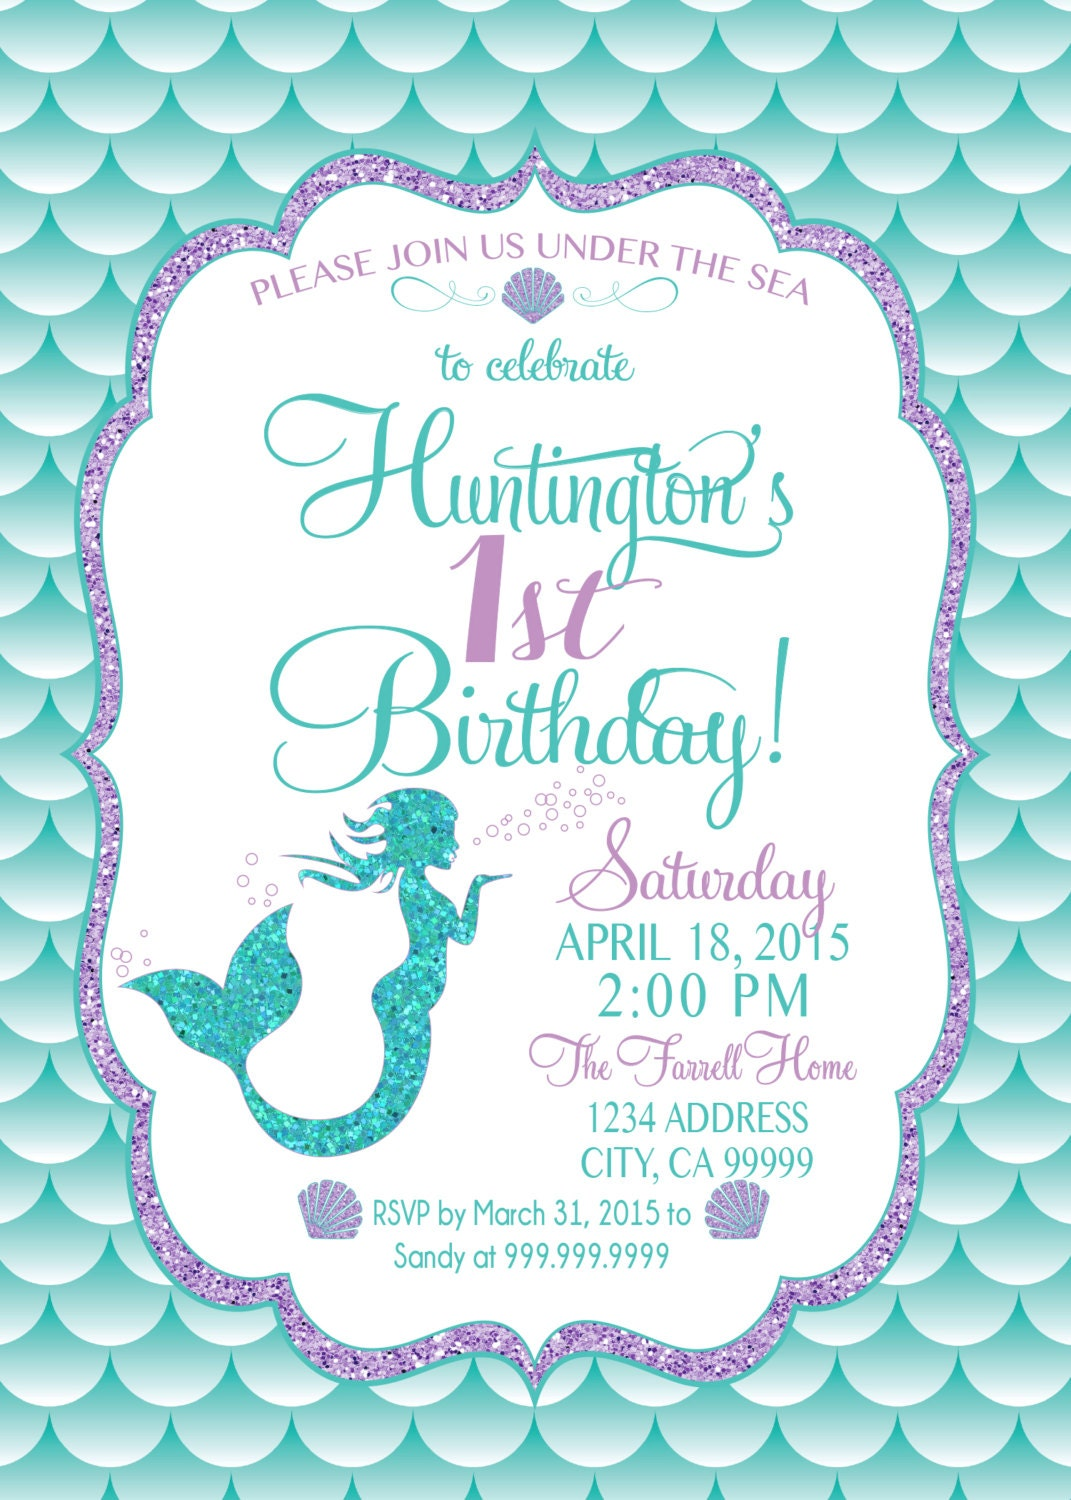 Clean image with regard to mermaid invitations free printable